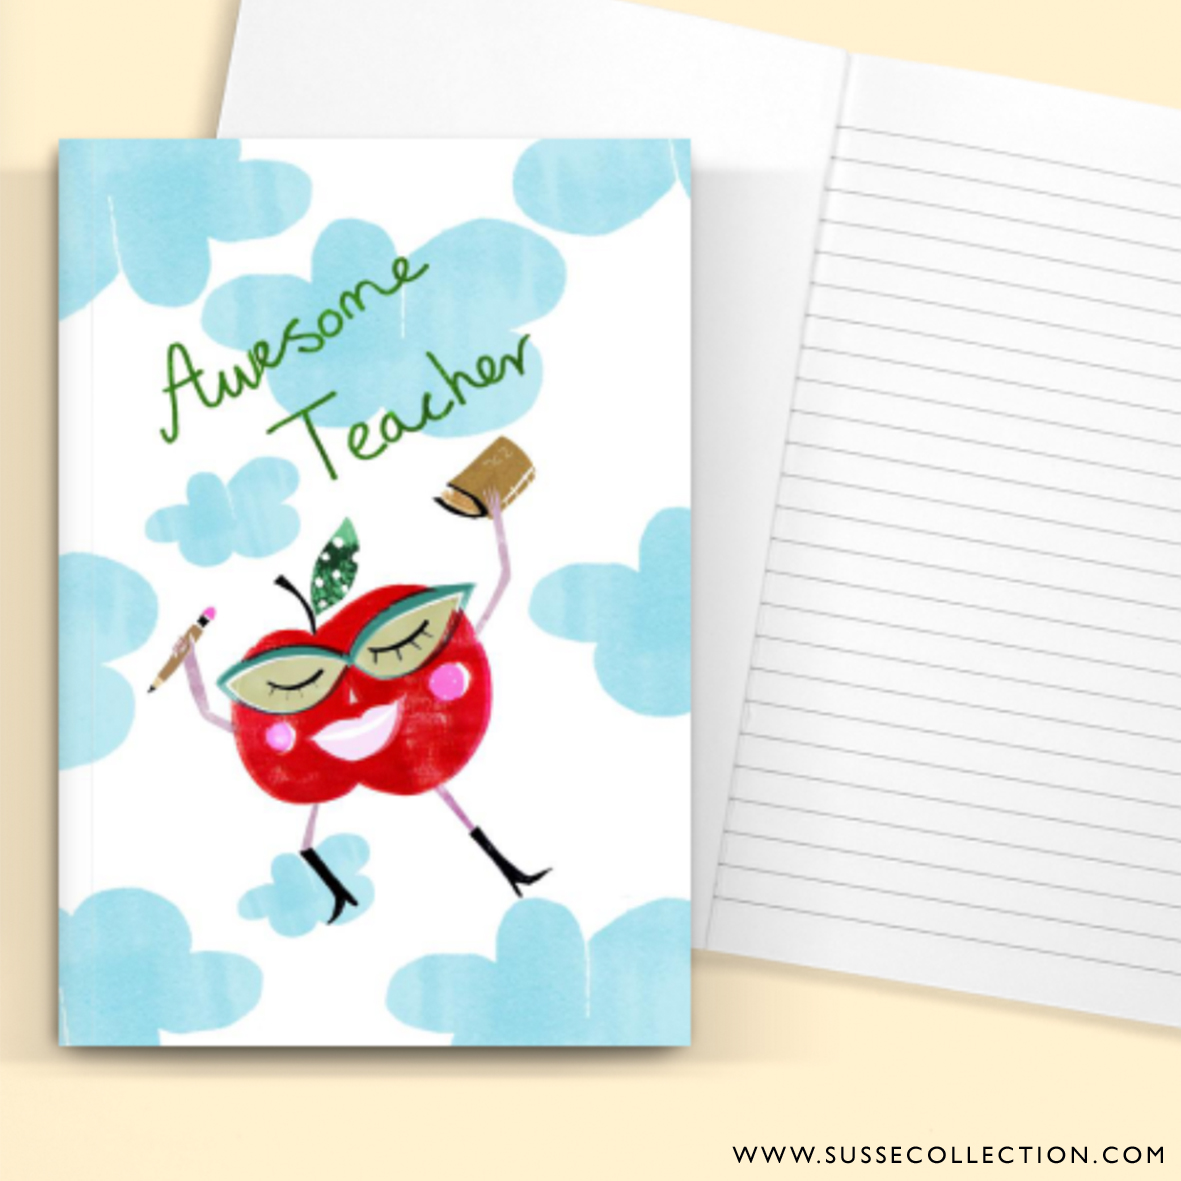 Susse Collection_Thank you teacher card 2.jpg